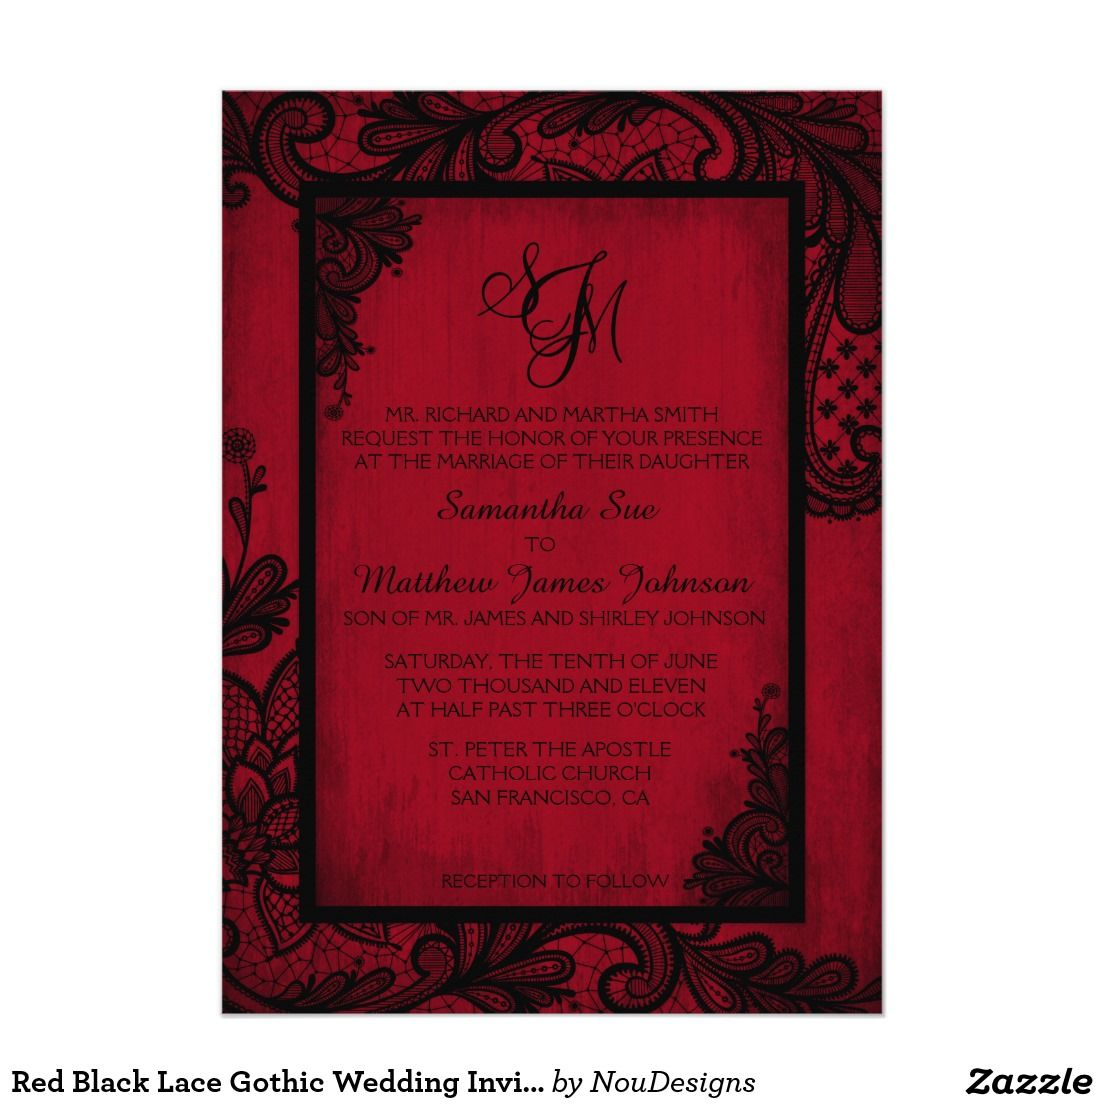 Red Black Lace Gothic Wedding Invitation Card | Ariele wedding ...